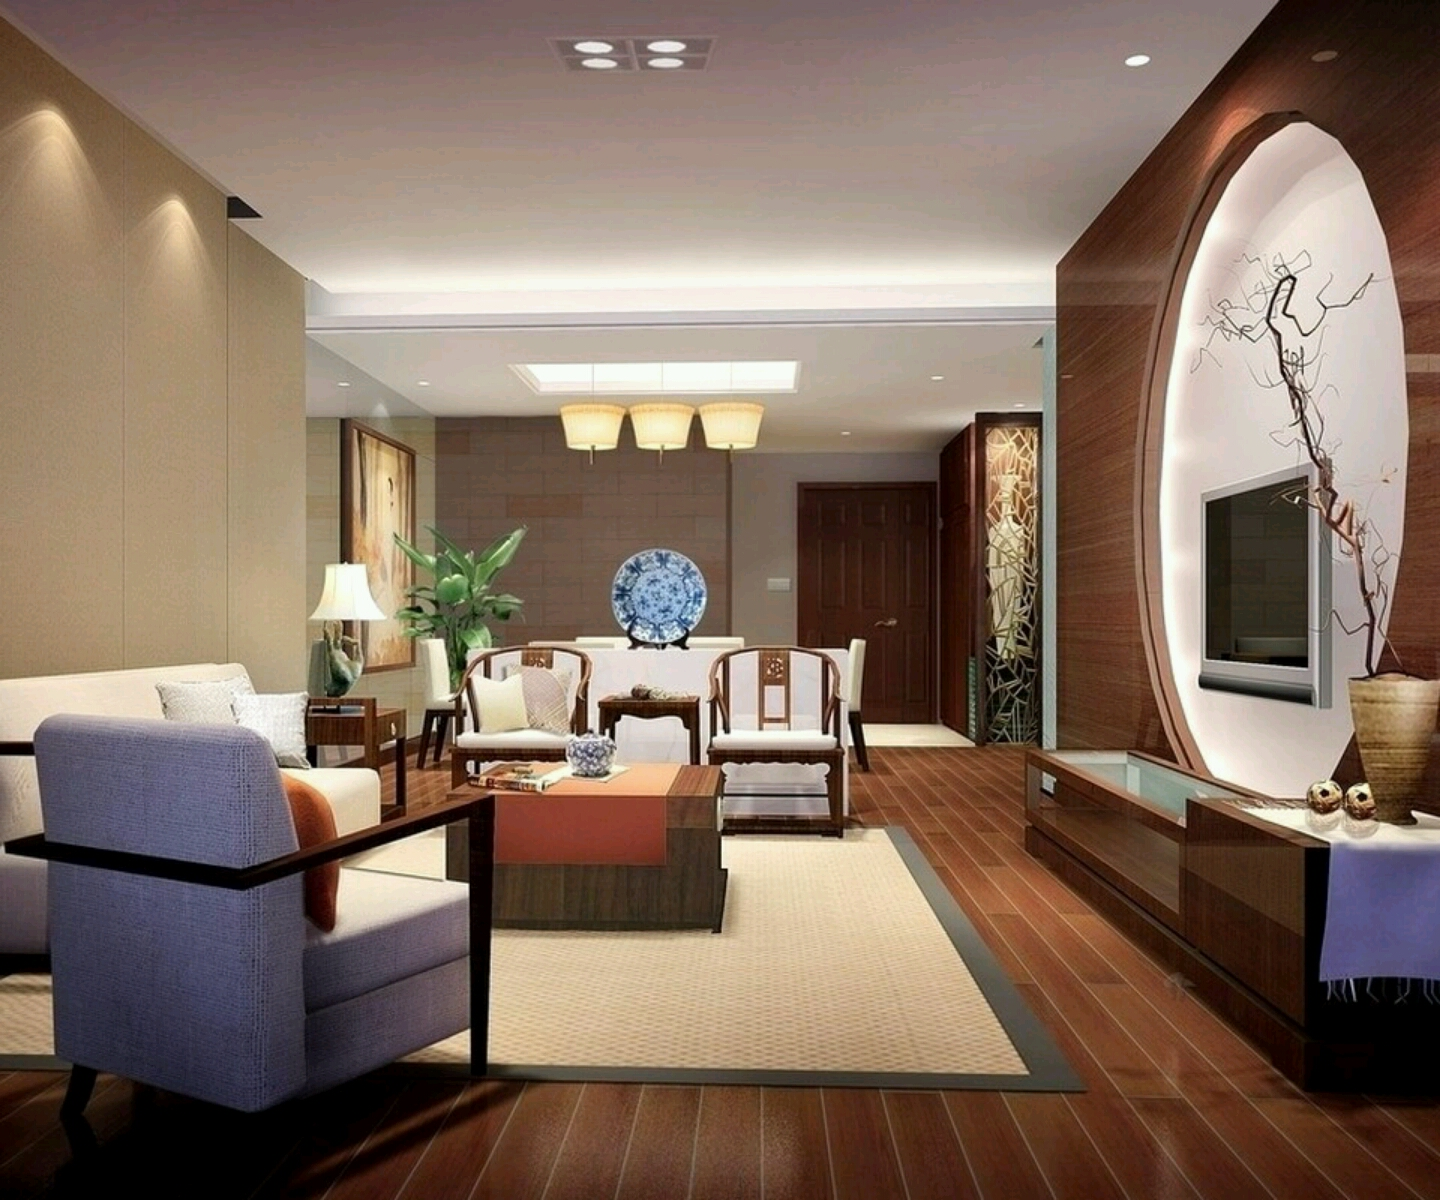 Luxury Homes Interior Decoration Living Room Designs Ideas: Luxury Homes Interior Decoration Living Room Designs Ideas.